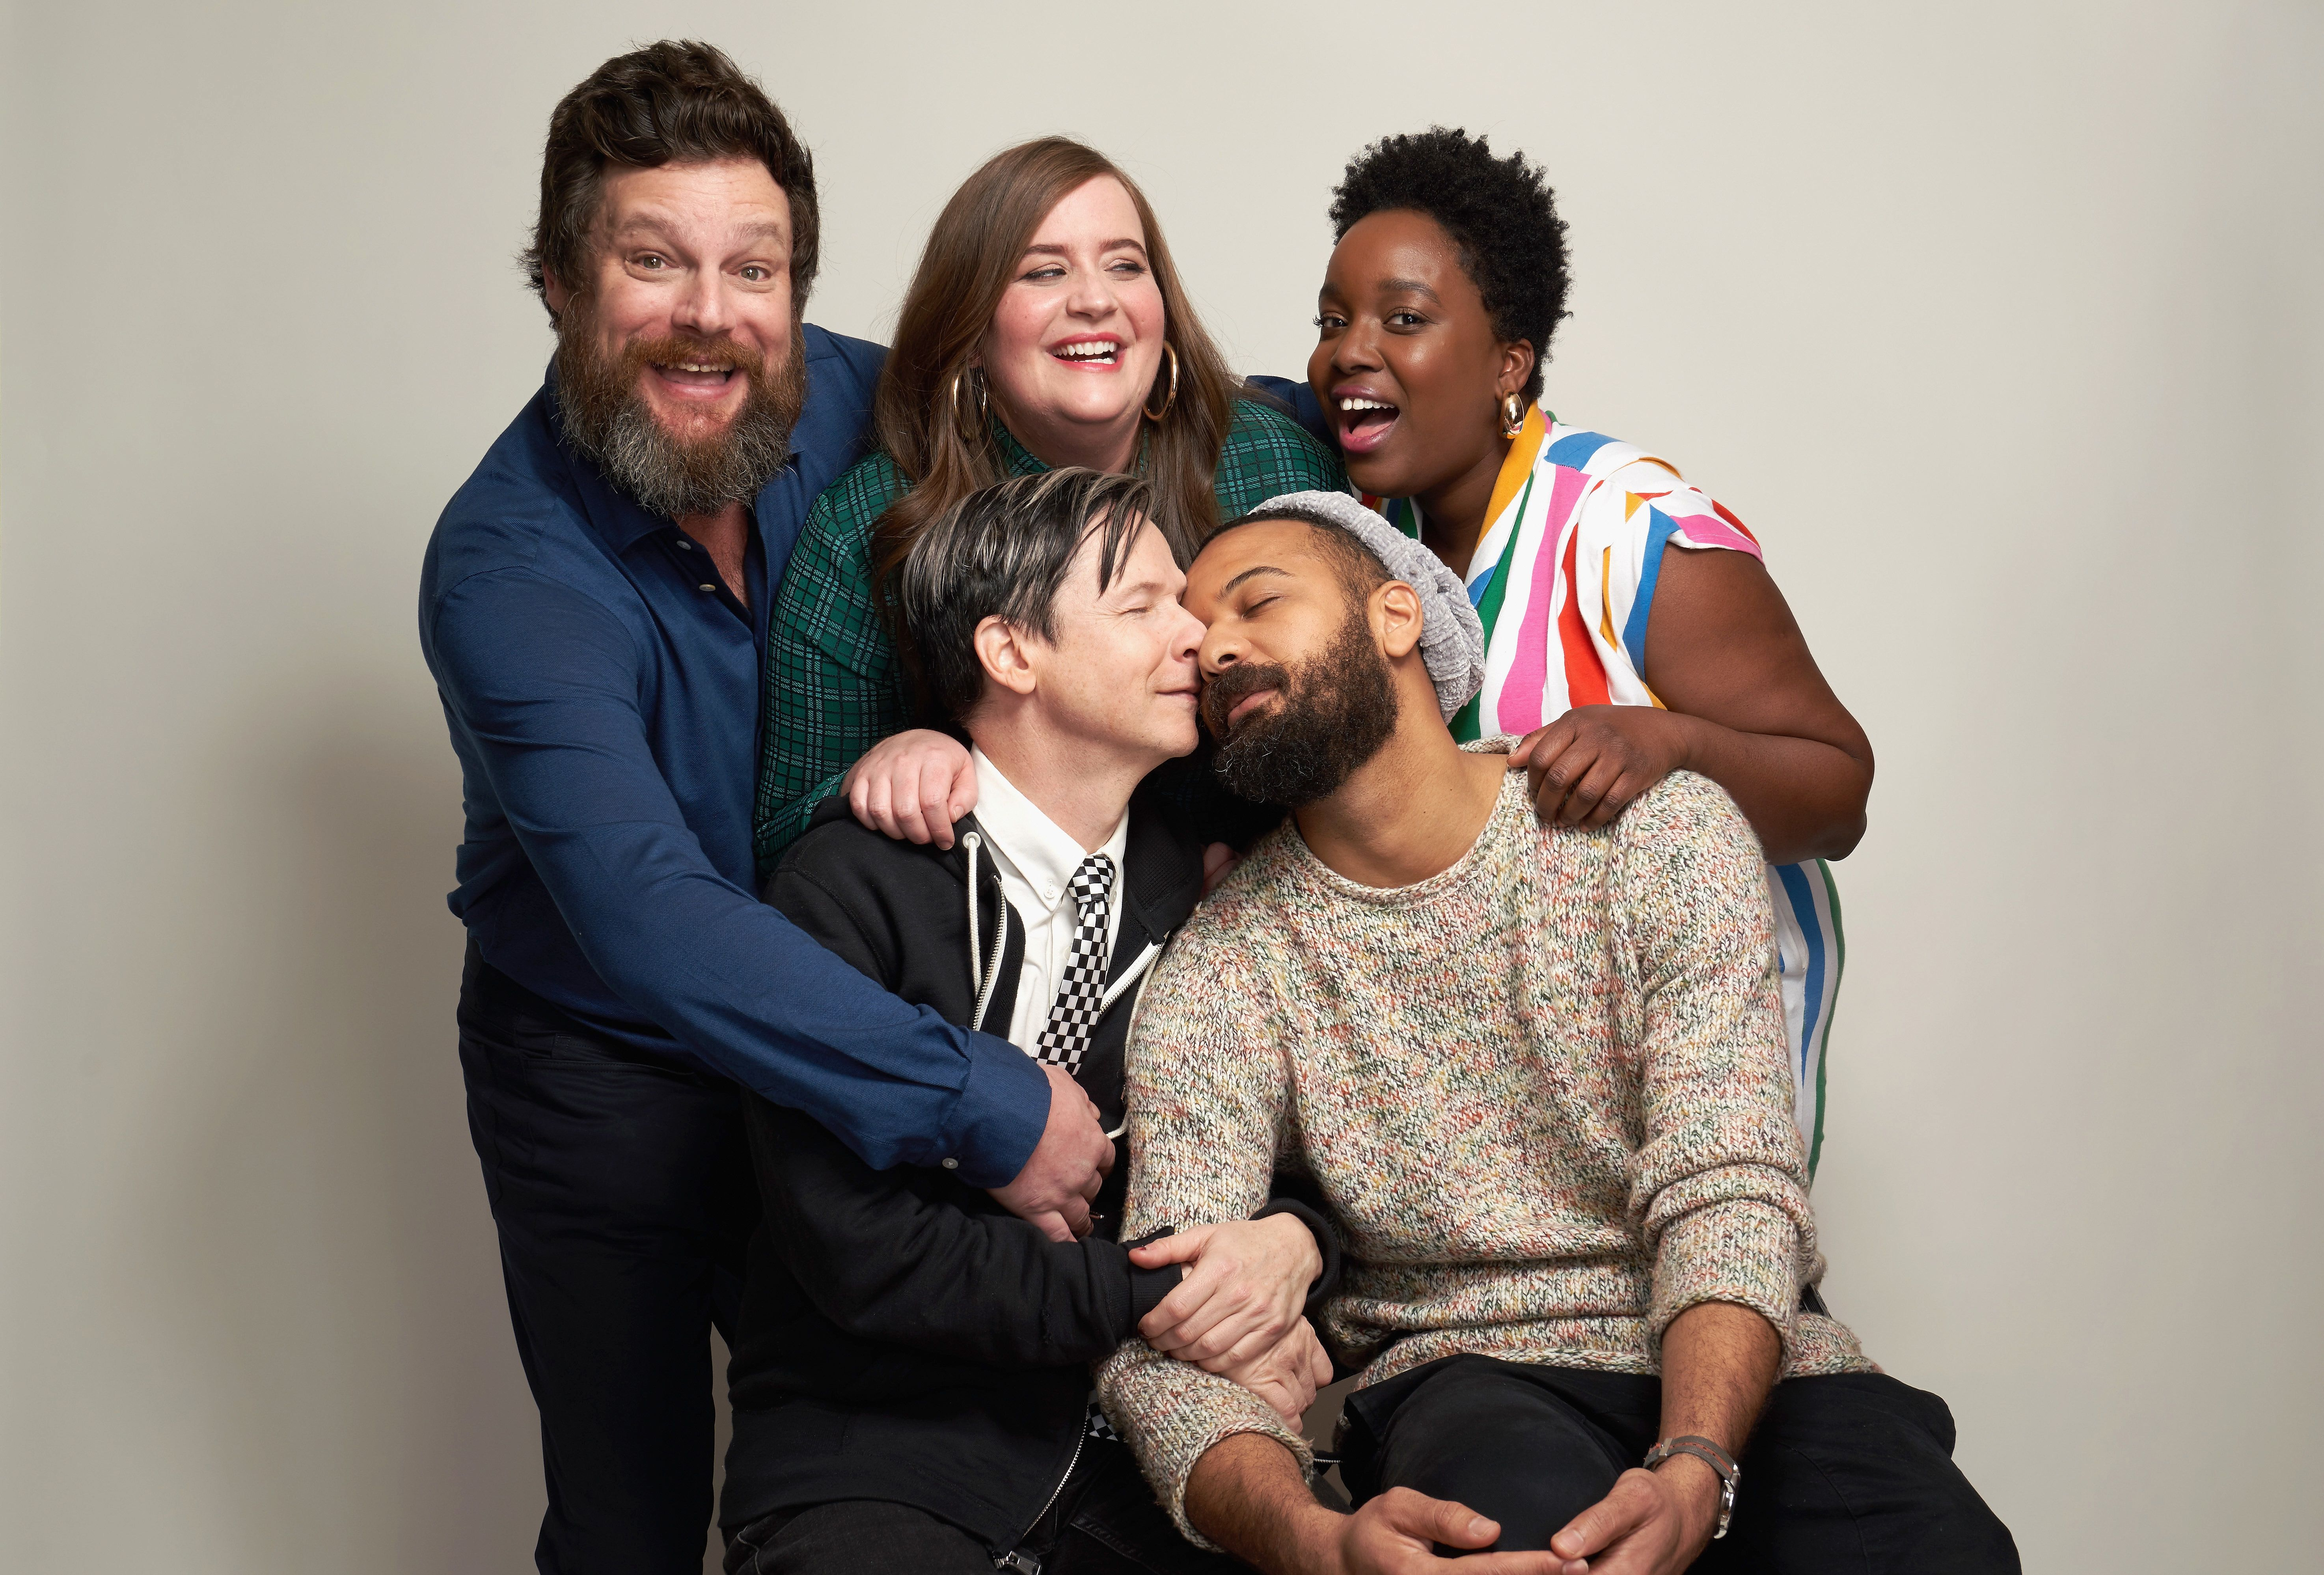 Luka Jones, Aidy Bryant, Lolly Adefope, John Cameron Mitchell, and Ian Owens of Hulu's 'Shrill' pose for a portrait on Feb. 11, in Pasadena, California.